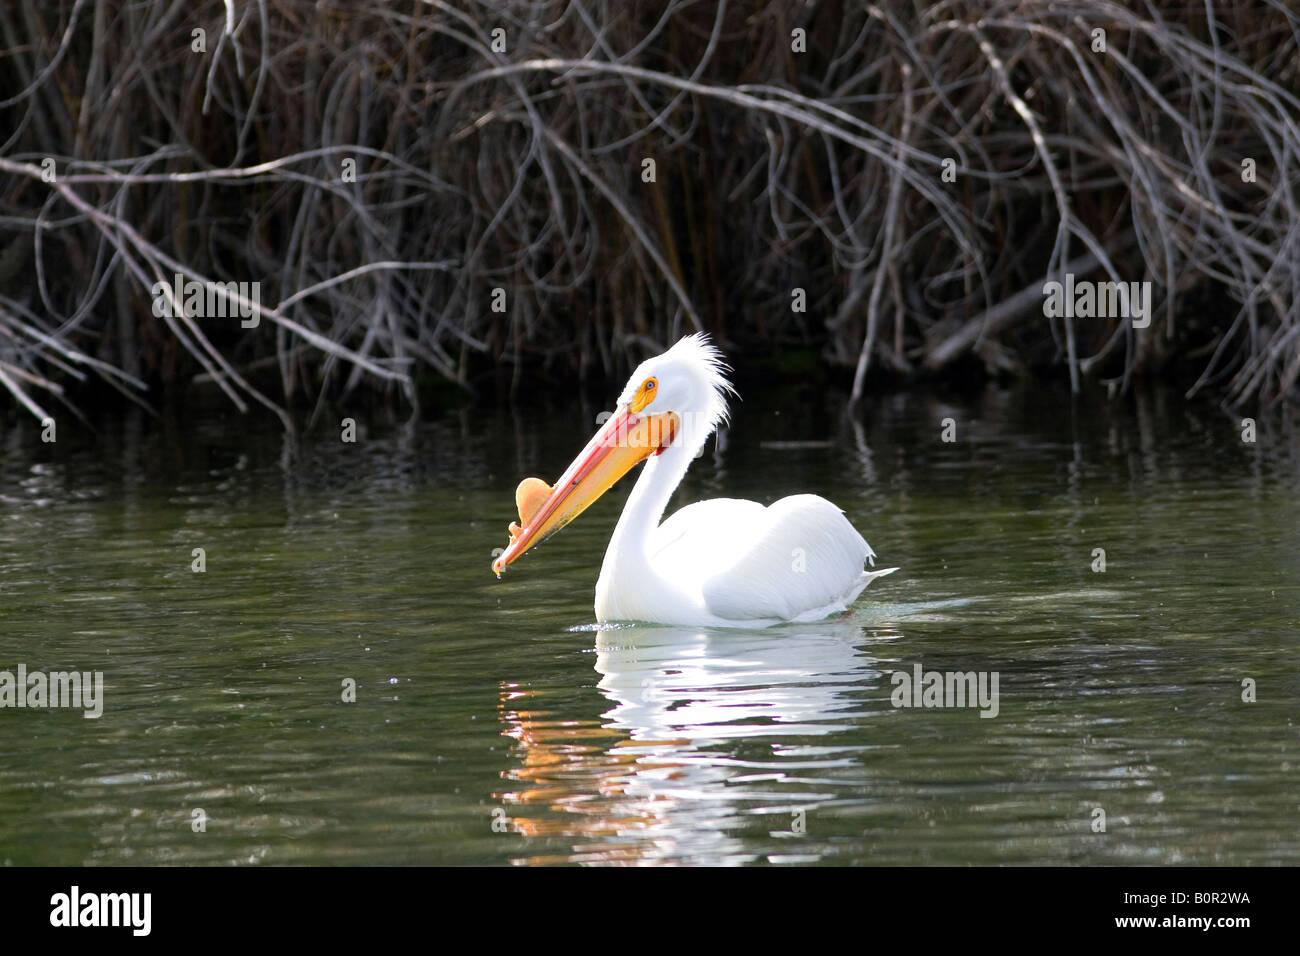 American White Pelican in the Snake River at Hagerman Idaho - Stock Image